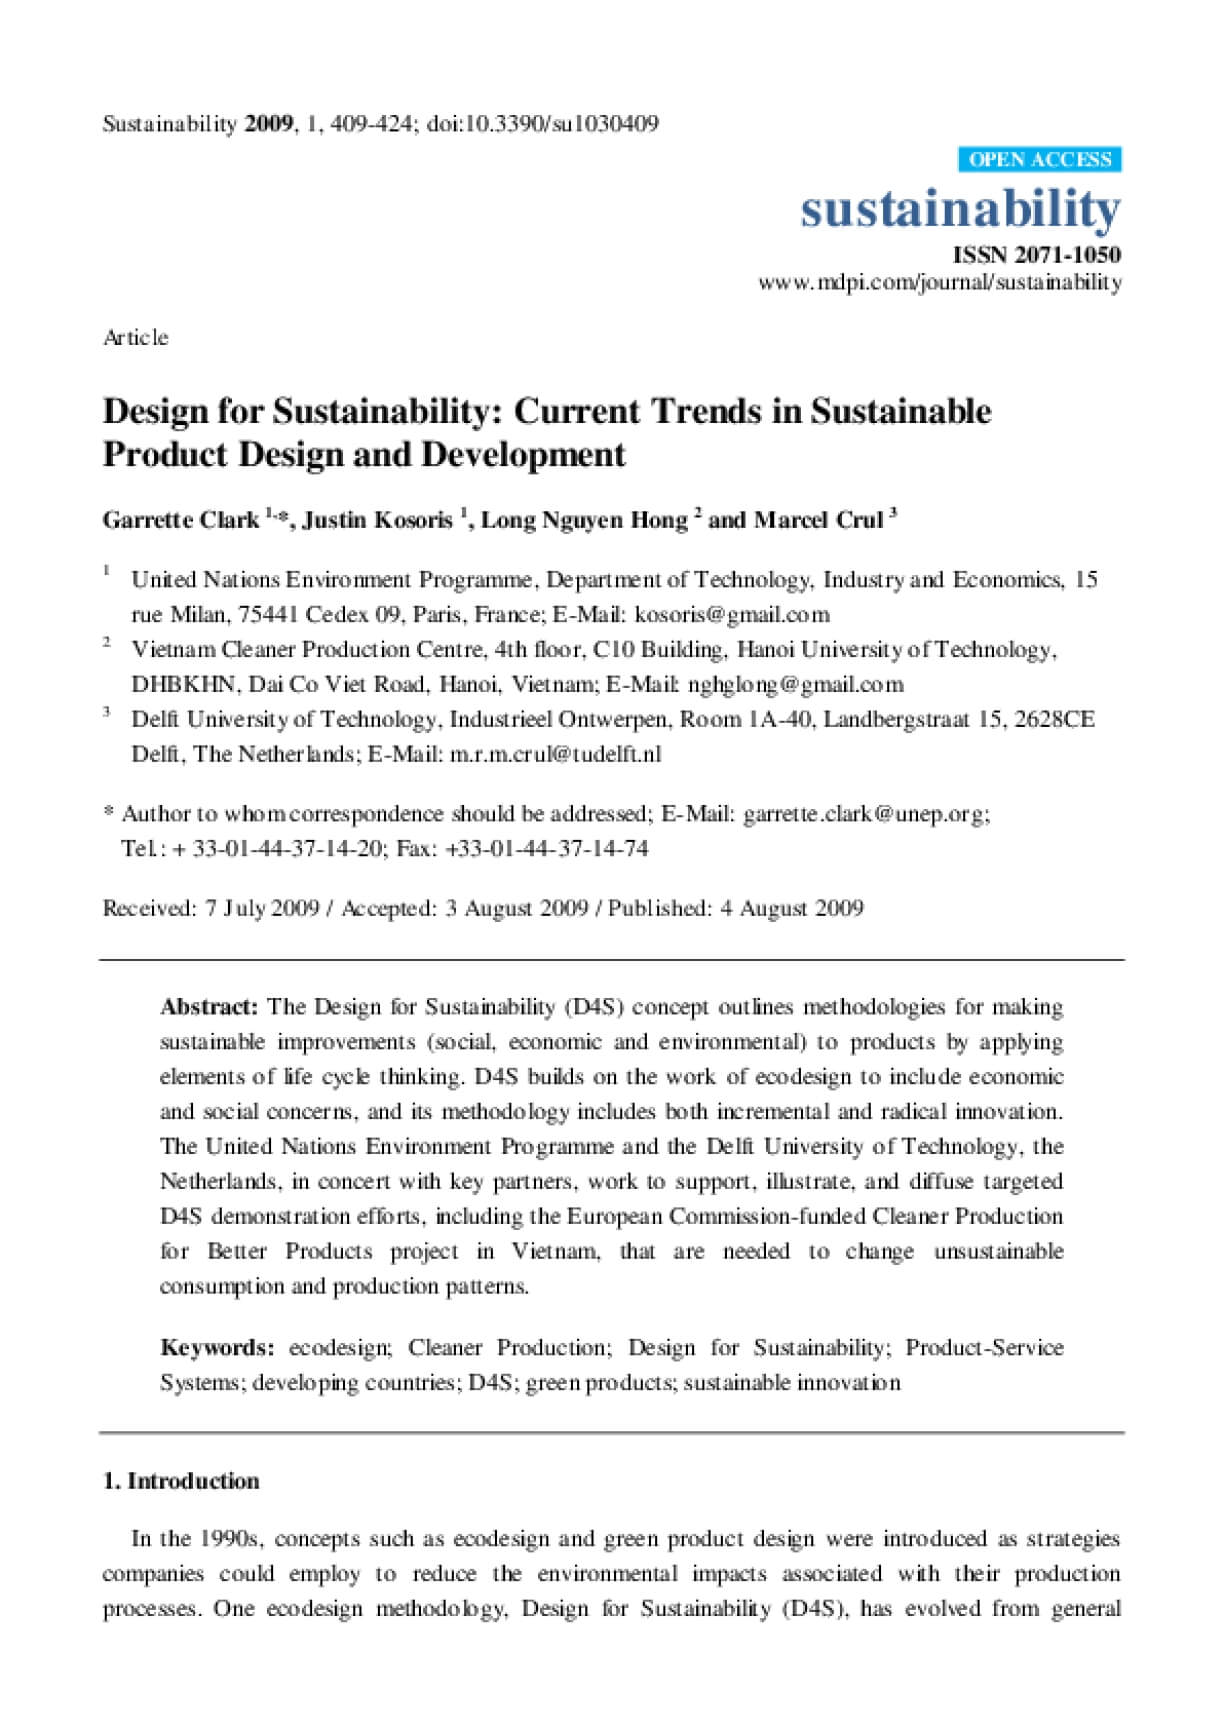 Design for Sustainability: Current Trends in Sustainable Product Design and Development